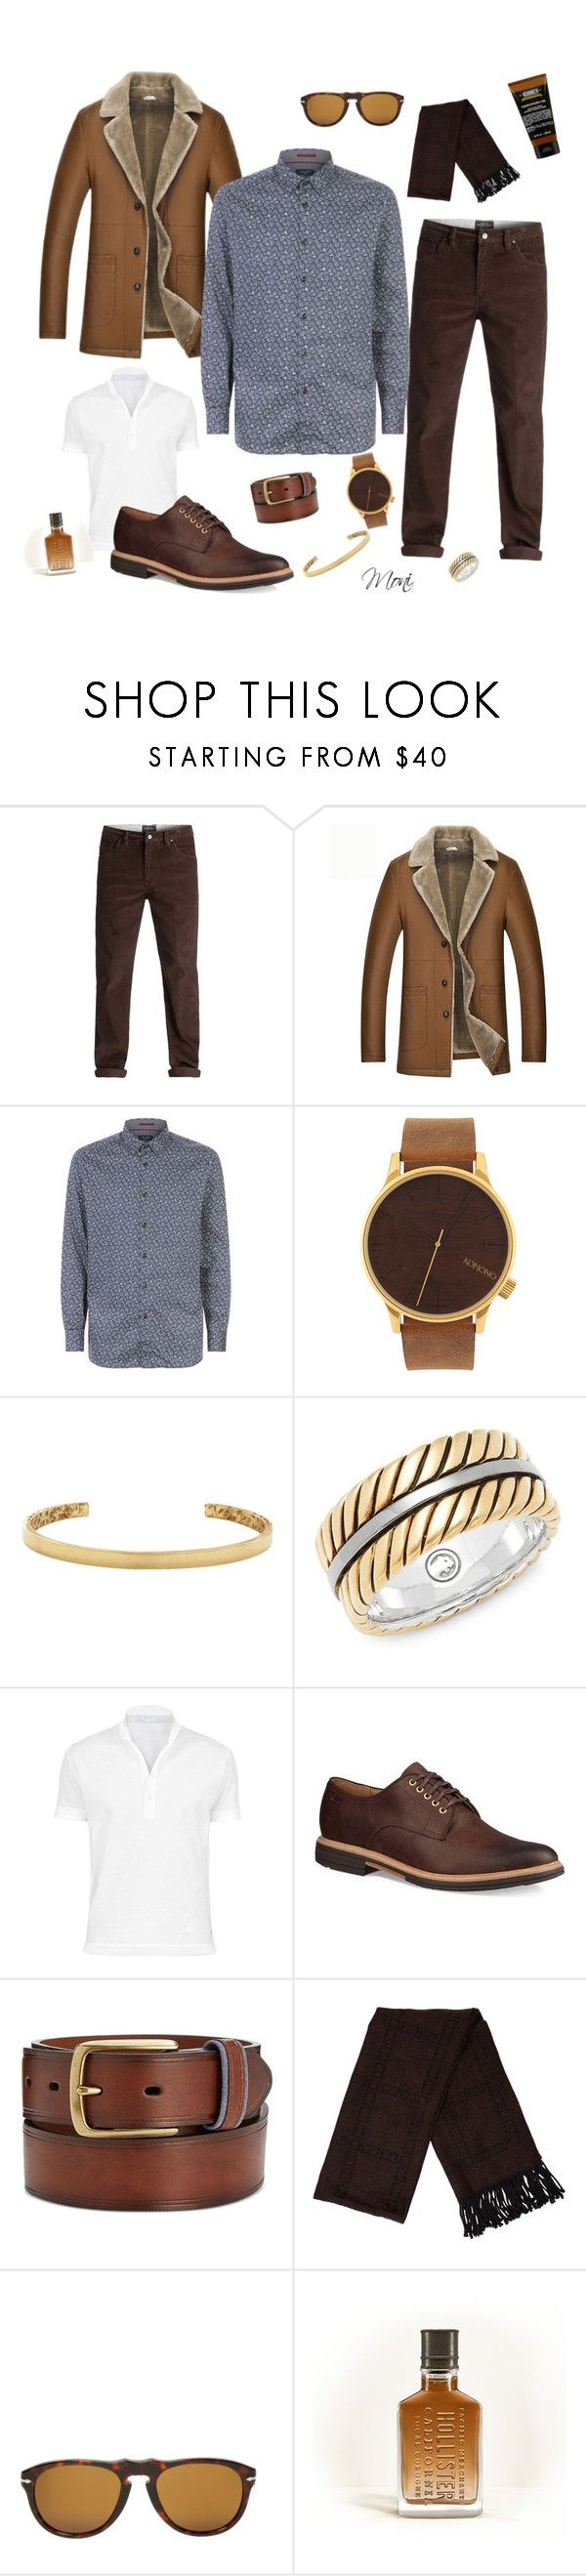 """""""Ready for anything!"""" by monicavbecker on Polyvore featuring Quiksilver, Ted Baker, Degs & Sal, Effy Jewelry, UGG, Club Room, Fendi, Persol, Hollister Co. and Kiehl's"""